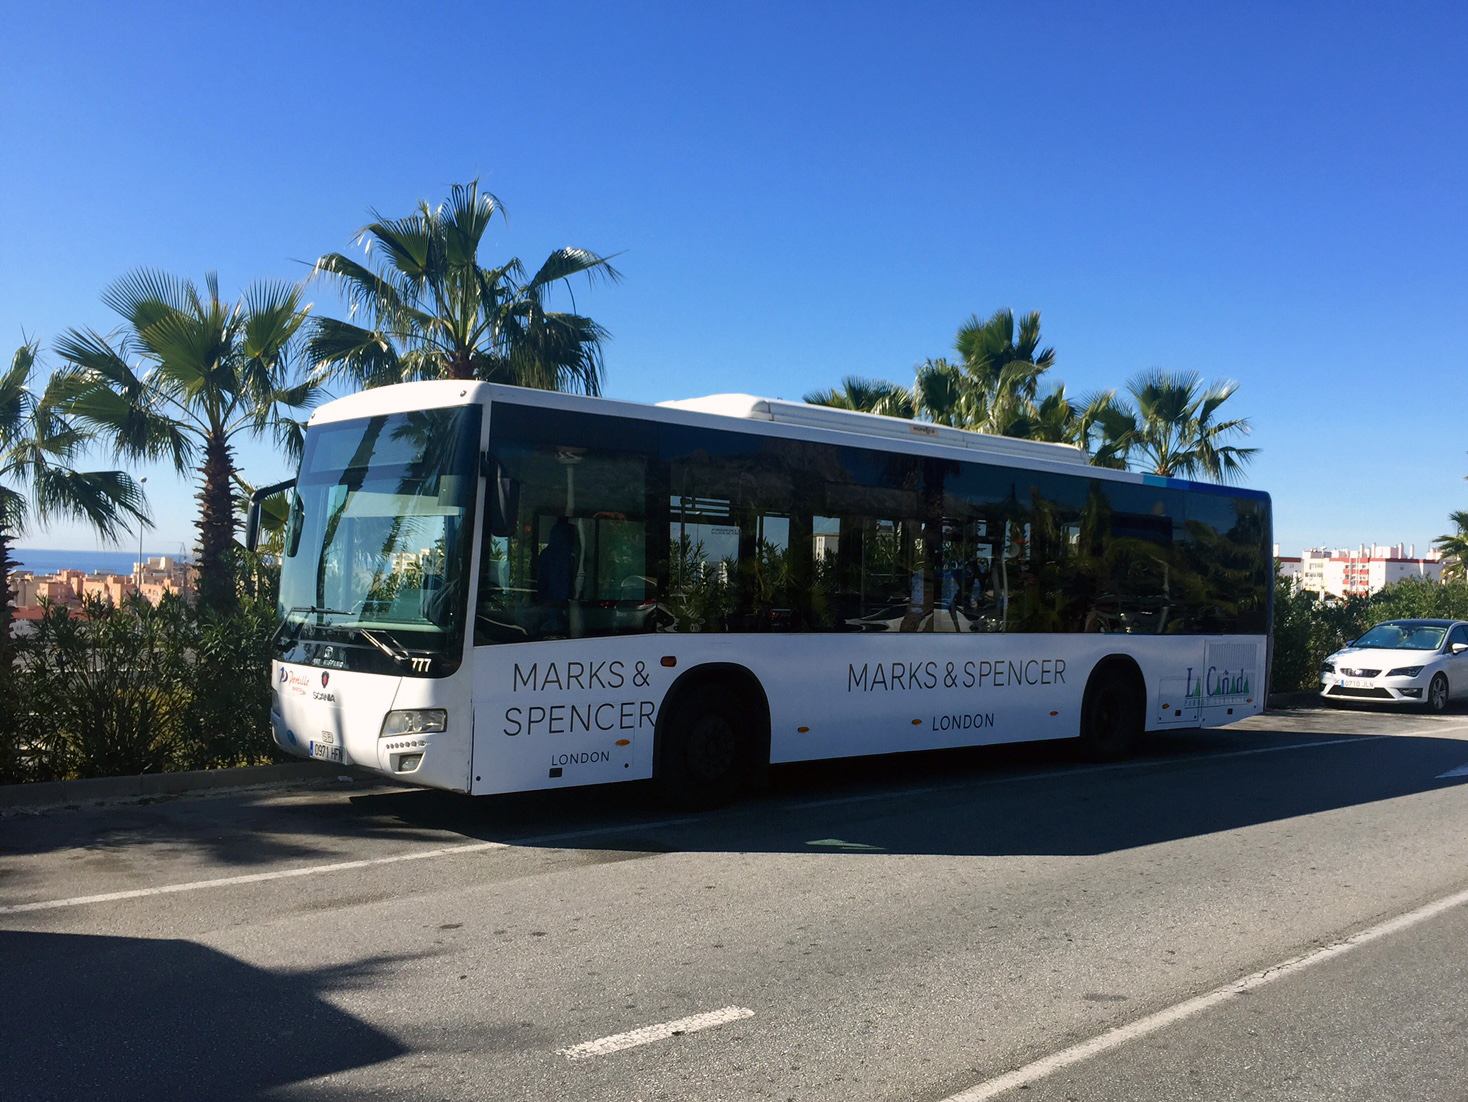 Advertising bus campaign for Marks & Spencer in Marbella